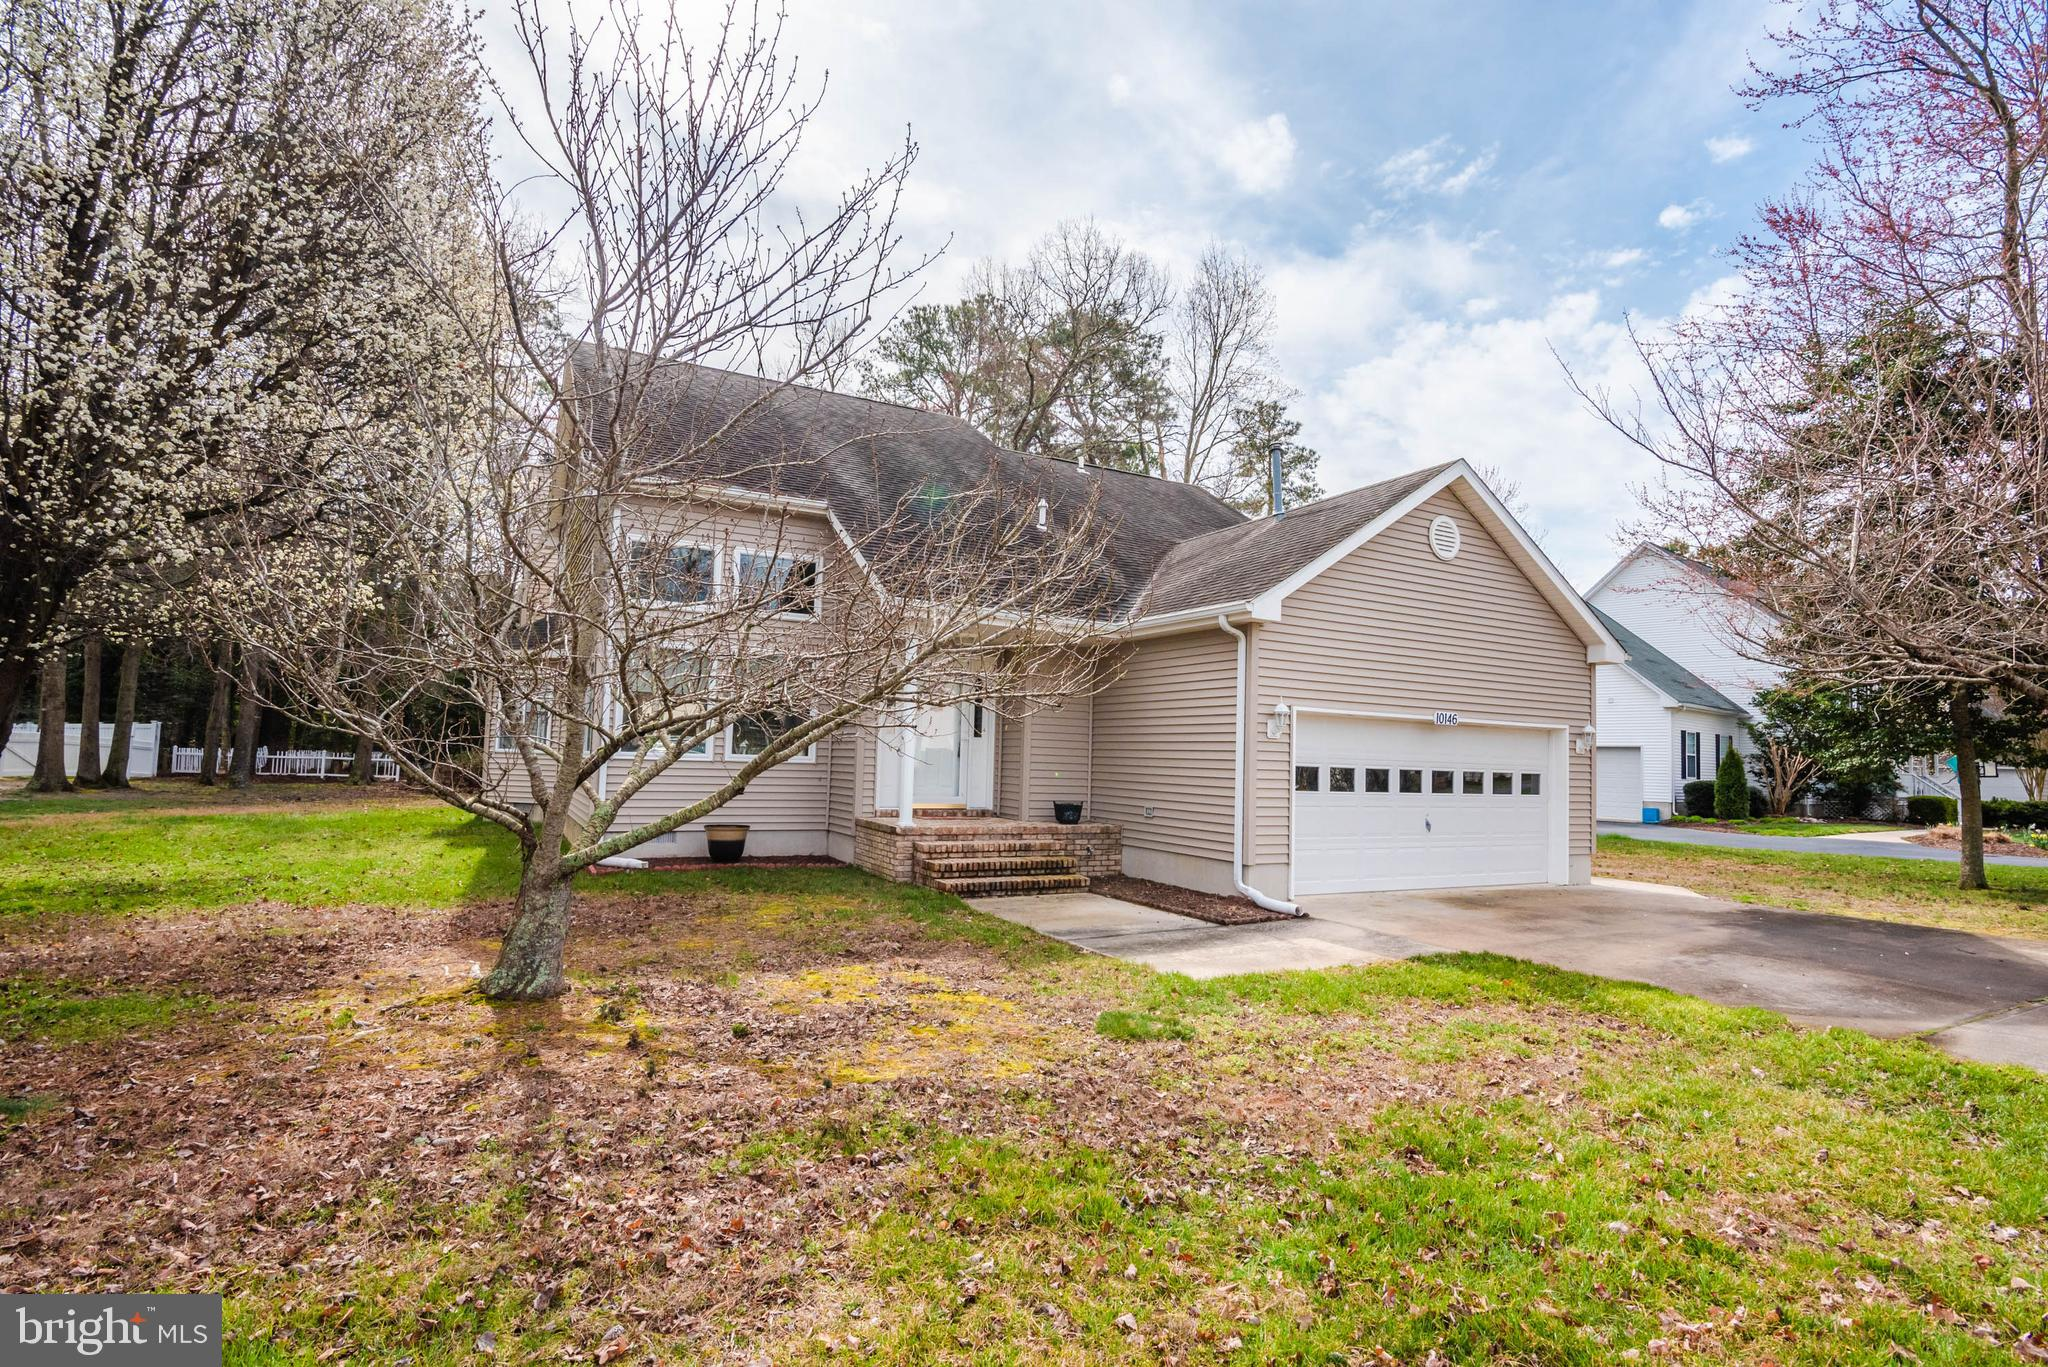 Meticulously maintained 4 br 2 1/2 bath home in Fox Chapel!    Master bedroom on 1st floor!  2 car garage.  sun room.   open floor plan with loft! Close to the beaches of Assateague Island and Ocean City!   Walking distance to Ocean City Elementary.    Great opportunity to own in Fox Chapel!